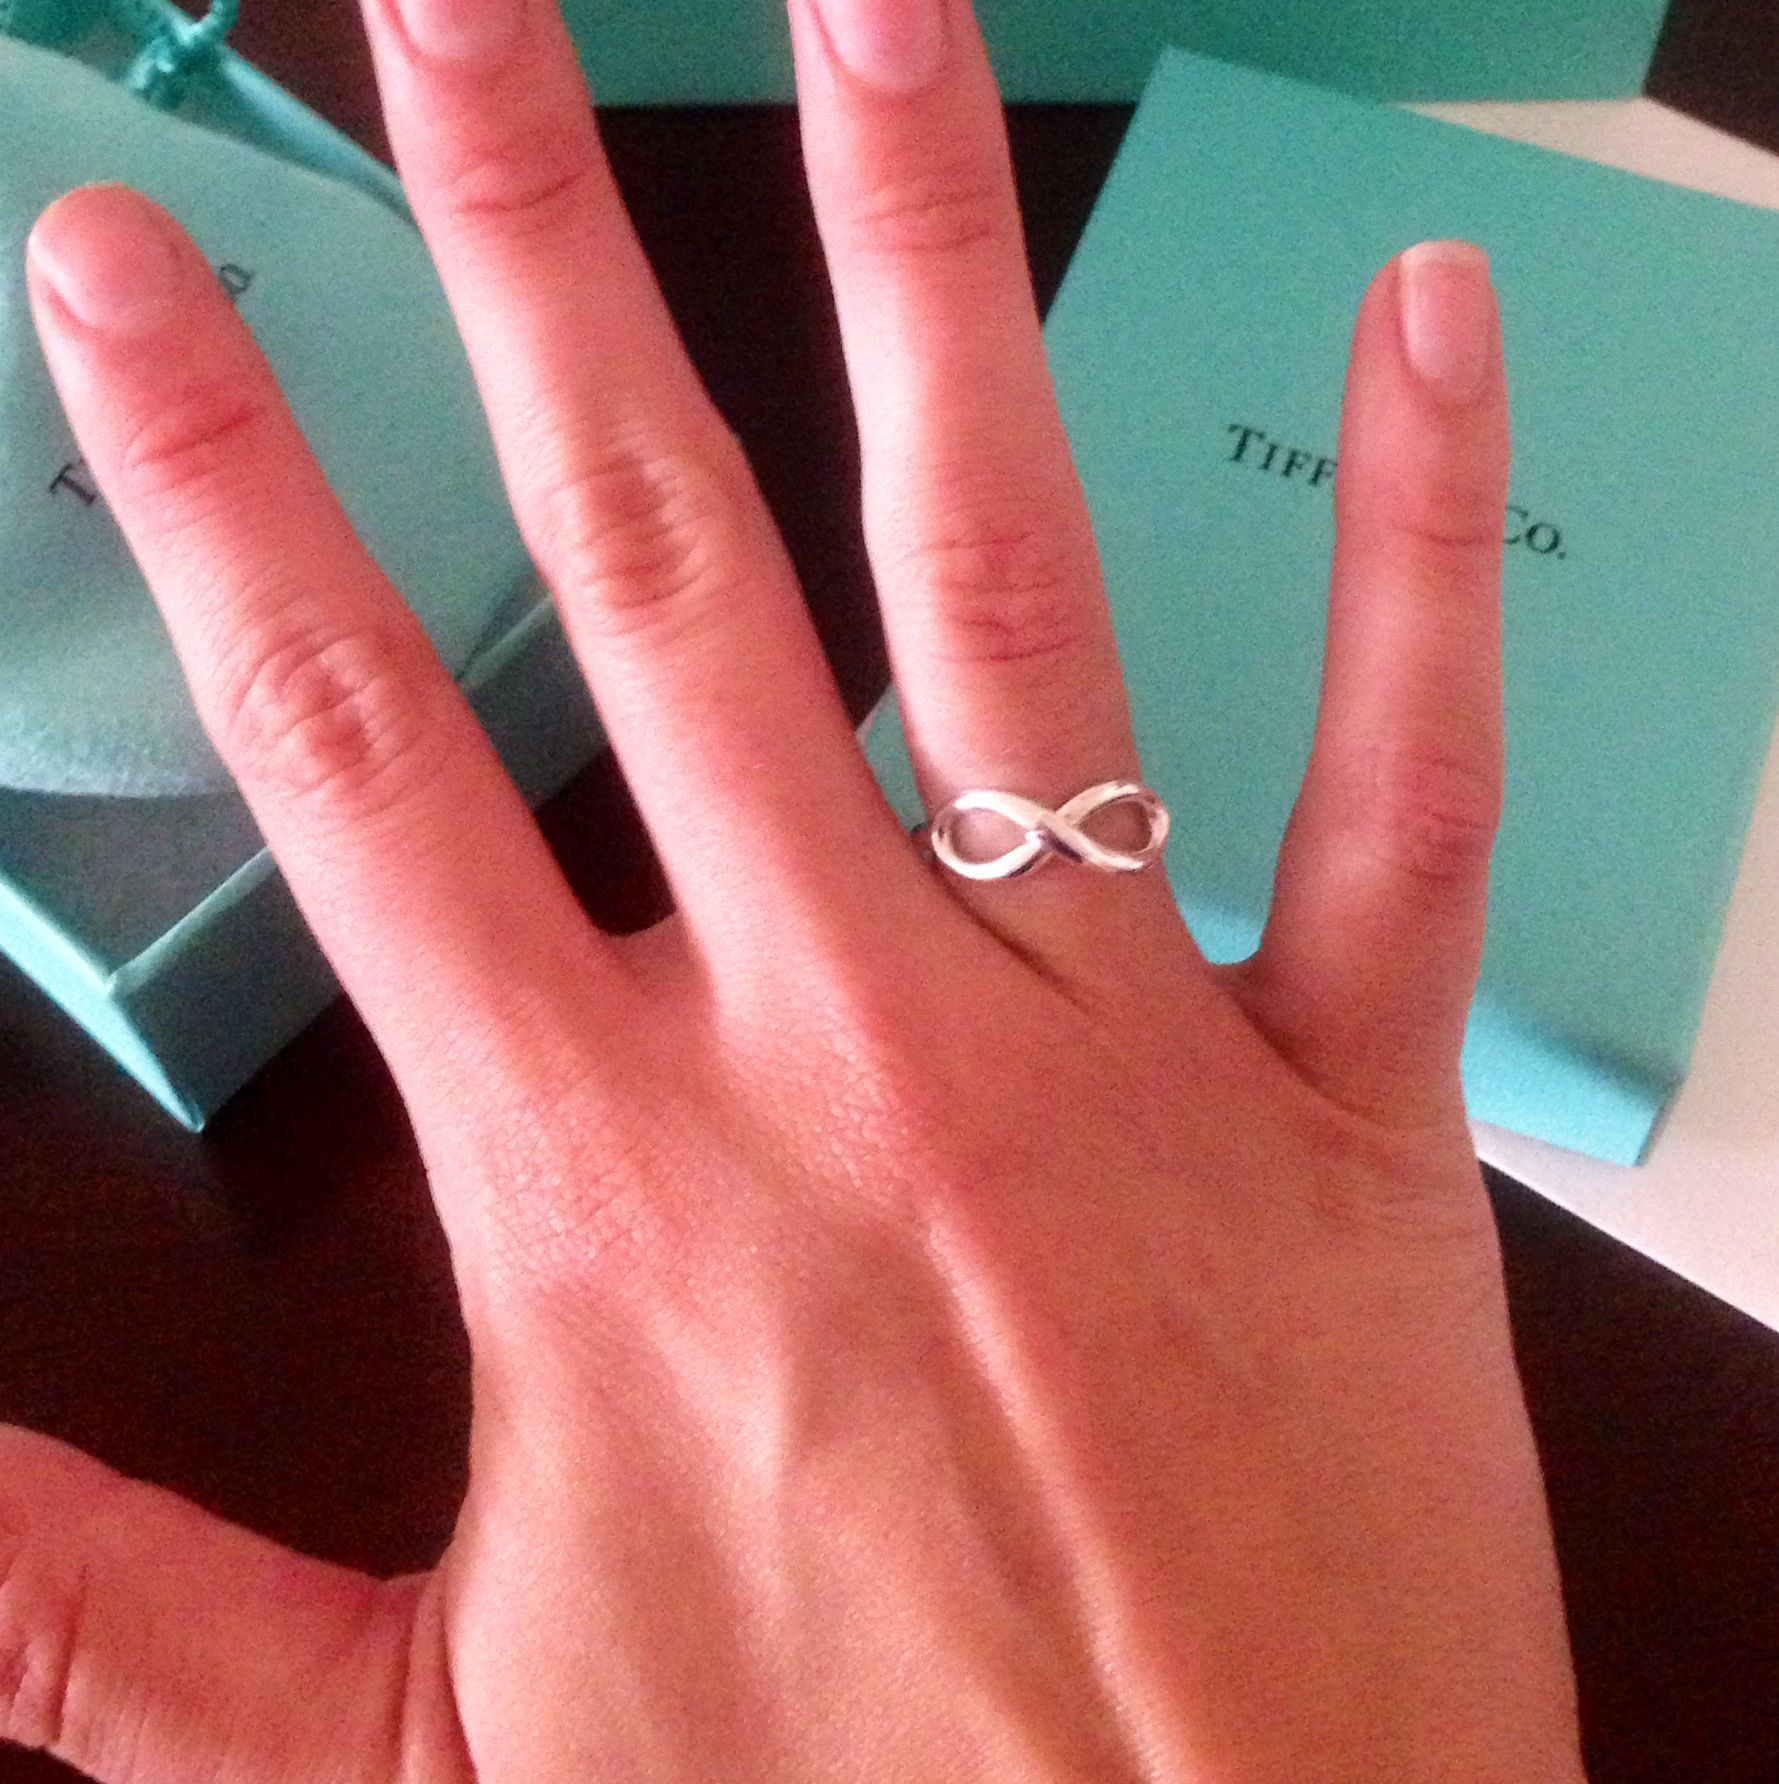 Tiffany Infinity Ring Christmas I think so PLEASE ITS SOLID SILVER YOU